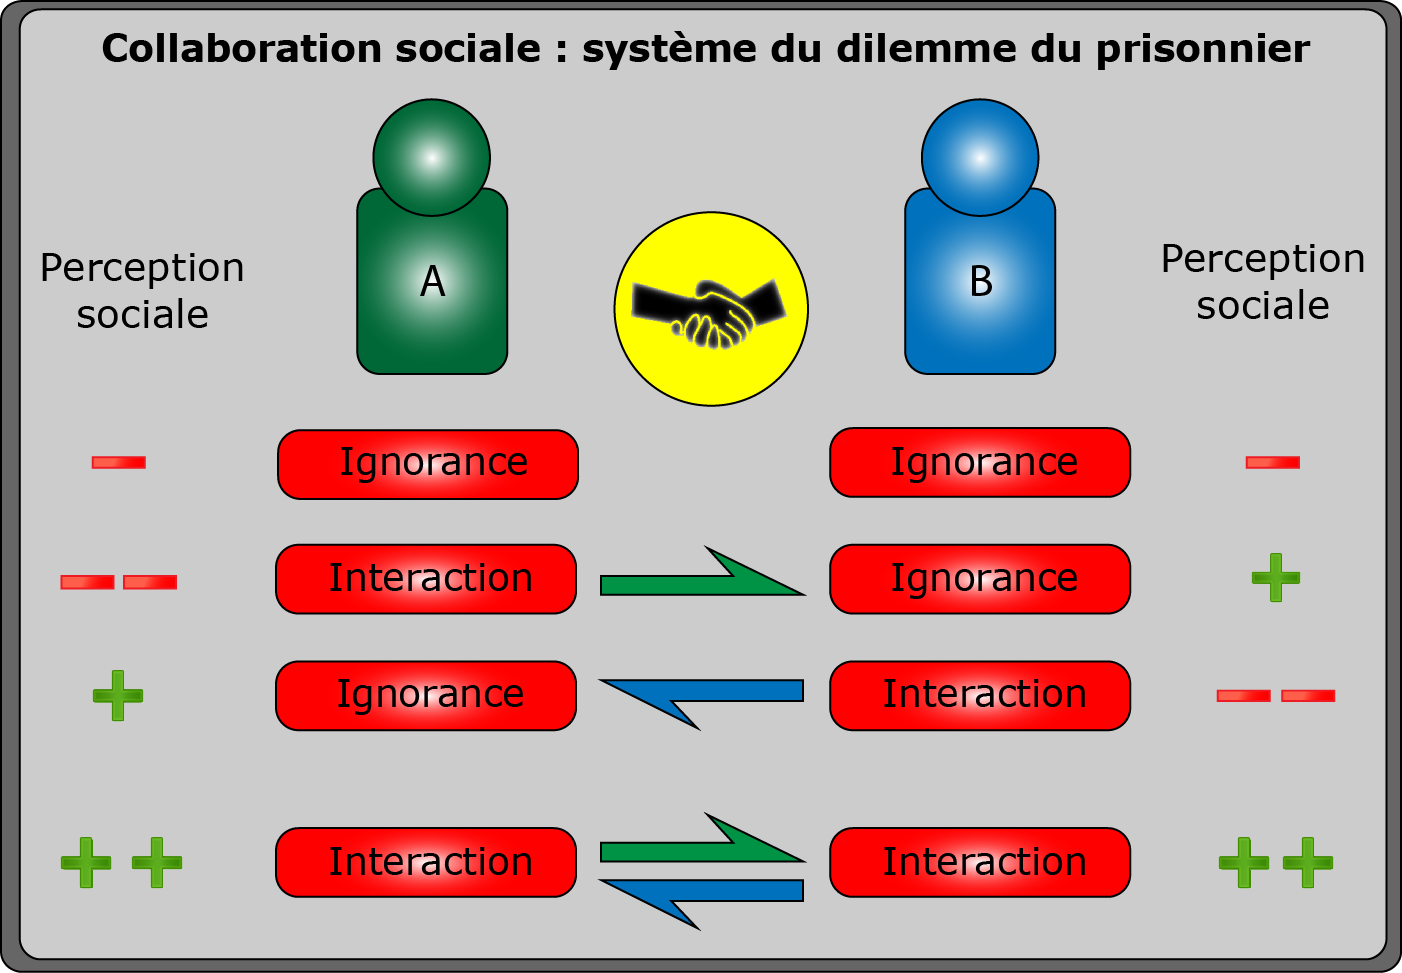 Schéma descriptif des interactions collaborative sur Twitter